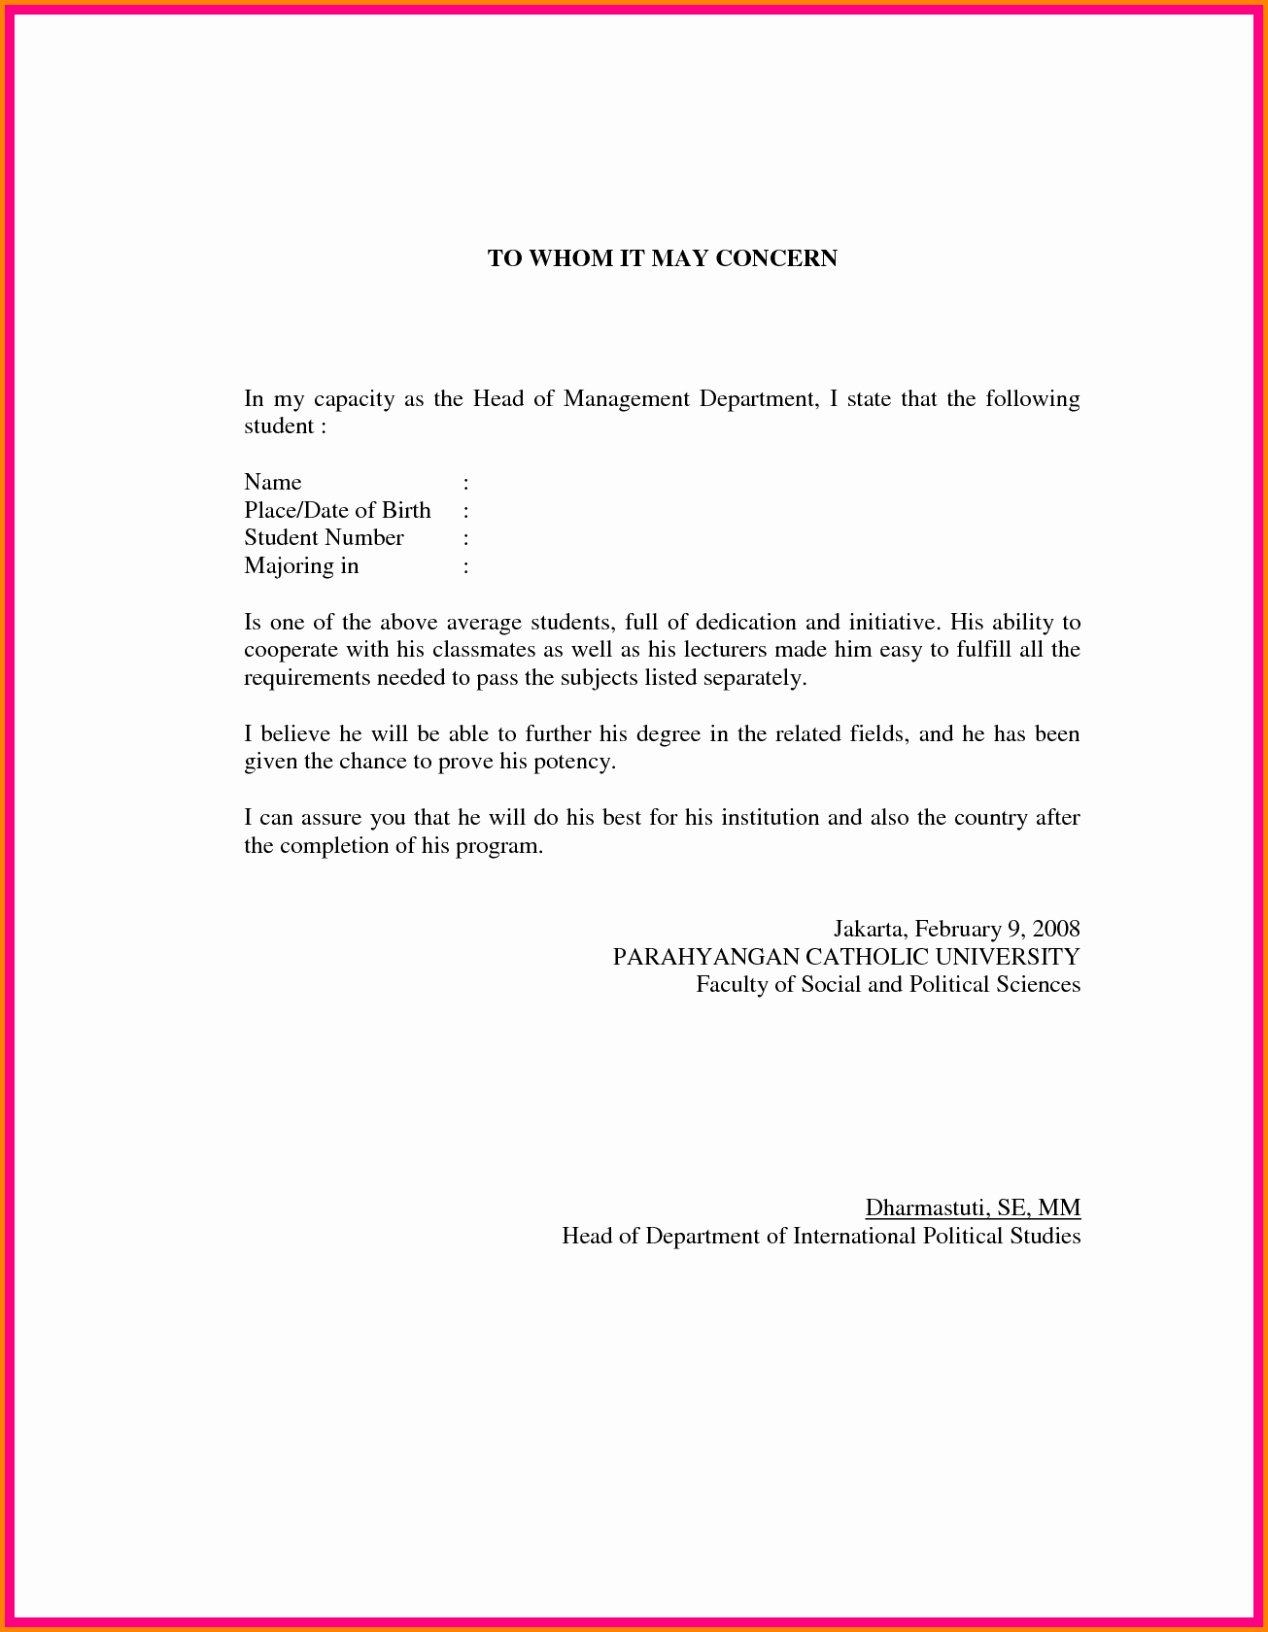 Letters Of Recommendation format Samples Elegant Letter Of Re Mendation format Sample Template